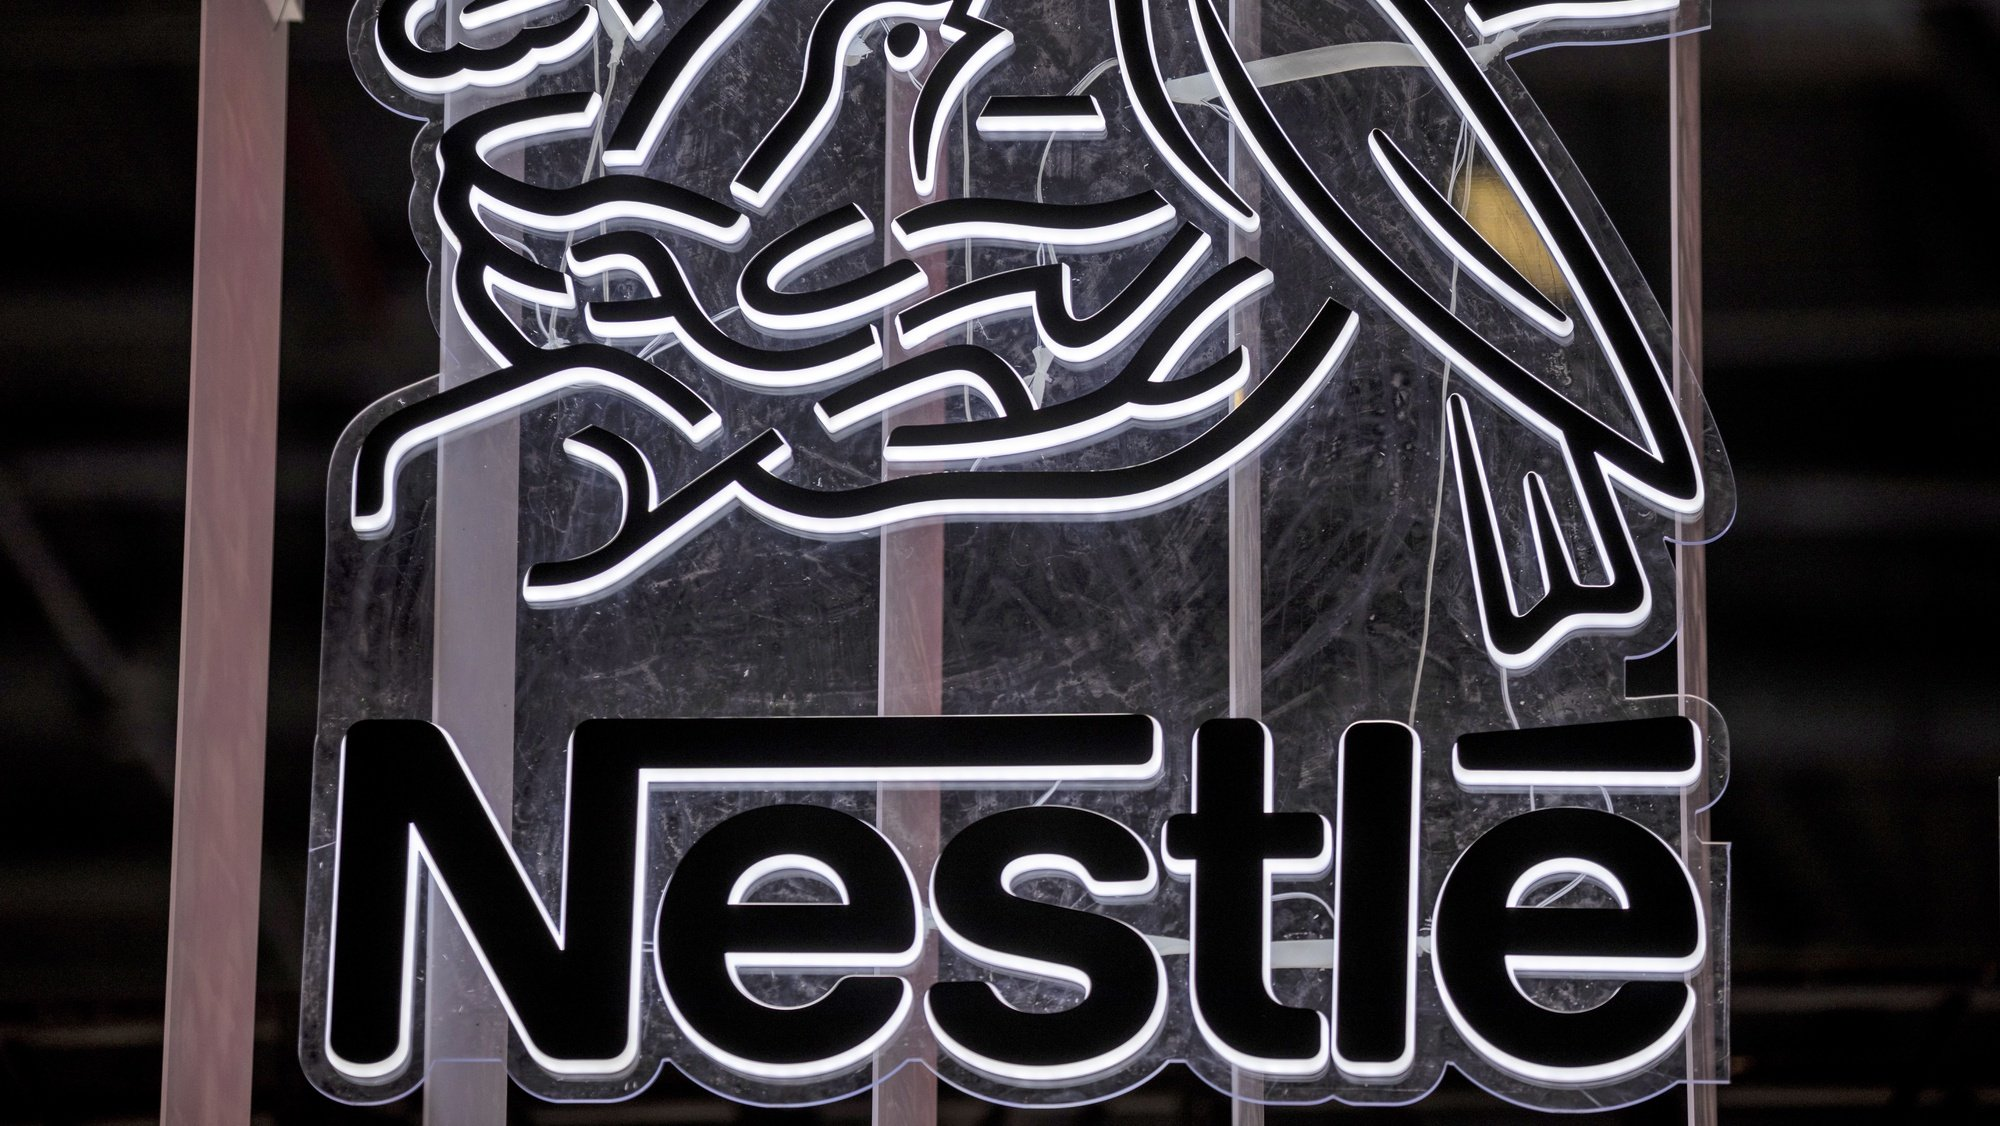 epa09018171 (FILE) - A Nestle logo is seen at the 3rd China International Import Expo in Shanghai, China, 07 November 2020 (reissued 17 February 2021). Nestle is due to release its 2020 full-year results on 18 February 2021.  EPA/ALEX PLAVEVSKI *** Local Caption *** 56531912